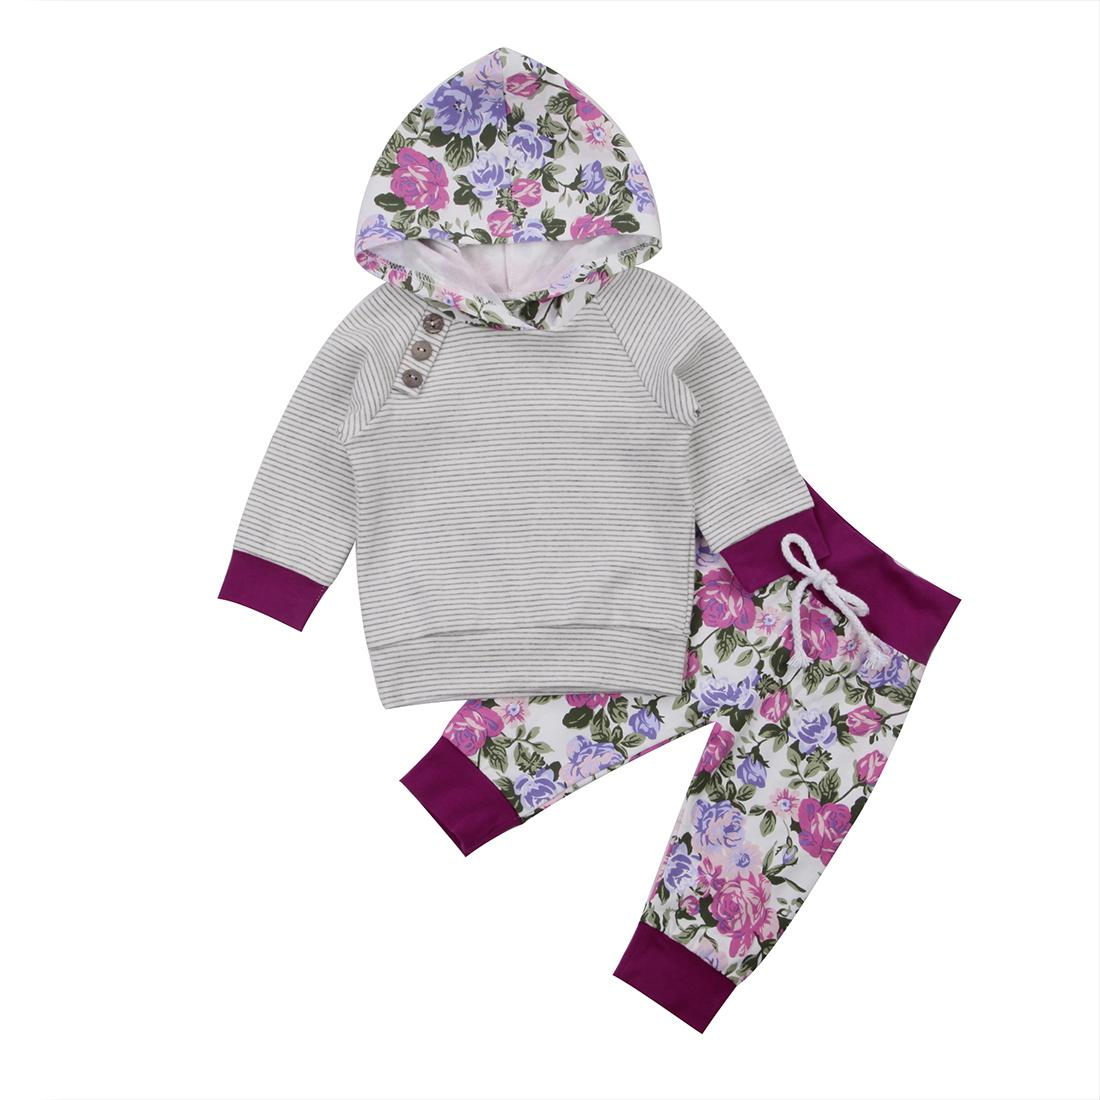 Floral Button Baby Clothing Newborn Kids Outfit Baby Boy Girl Clothes Hoodie T-shirt Tops+Pants Gift Sets Y190515